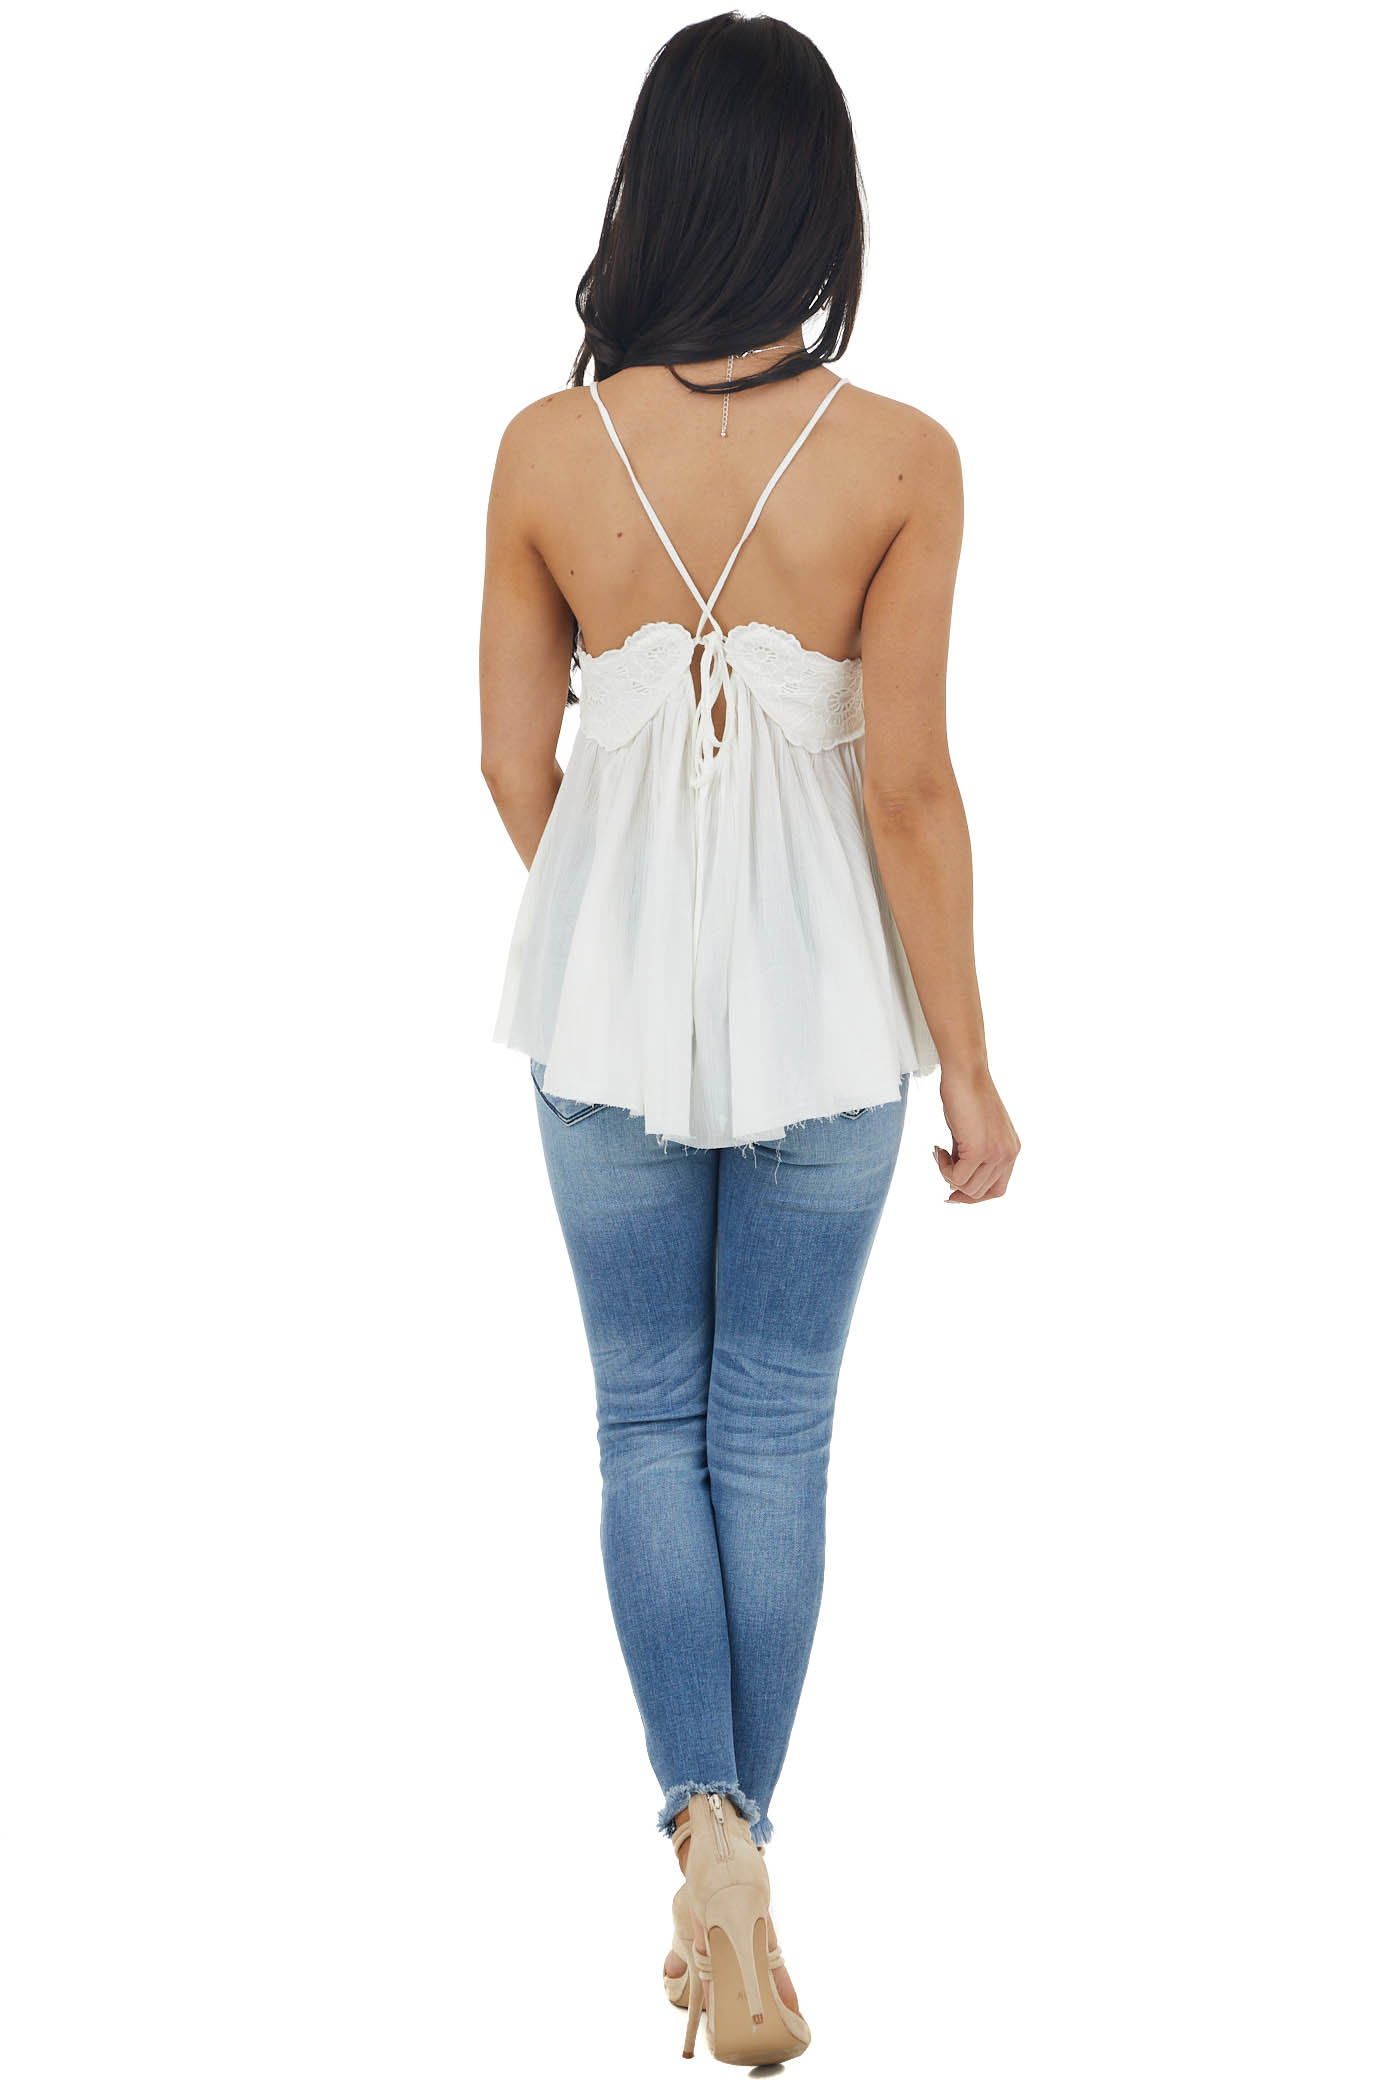 Ivory Lace Sleeveless Babydoll Top with Crisscross Straps